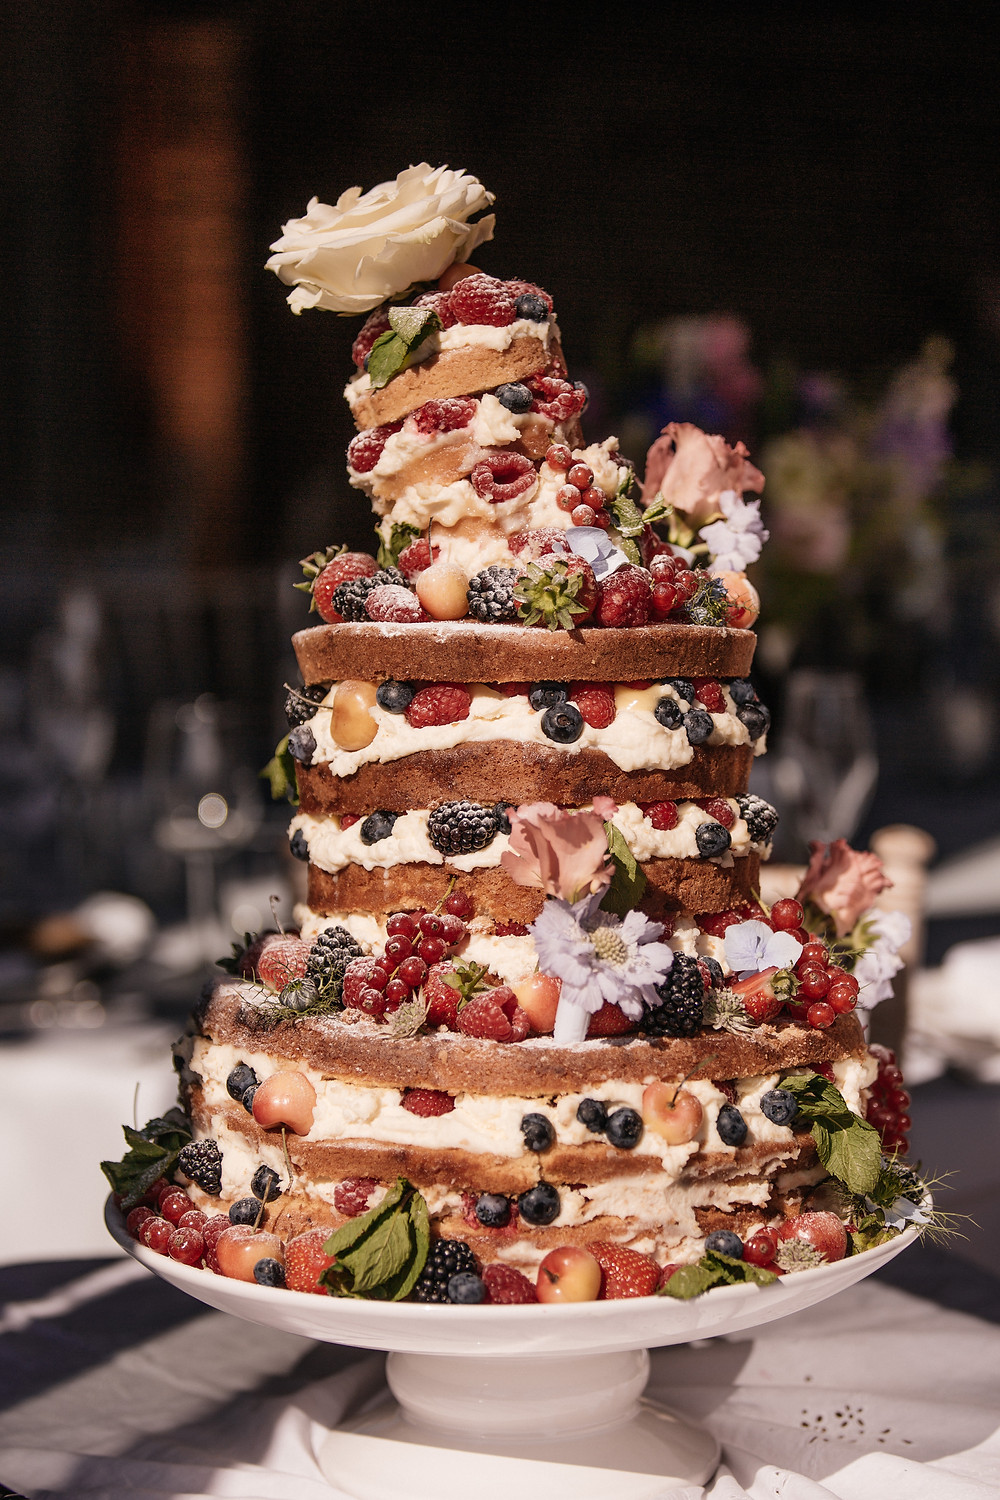 The show-stopping cake for 120 people